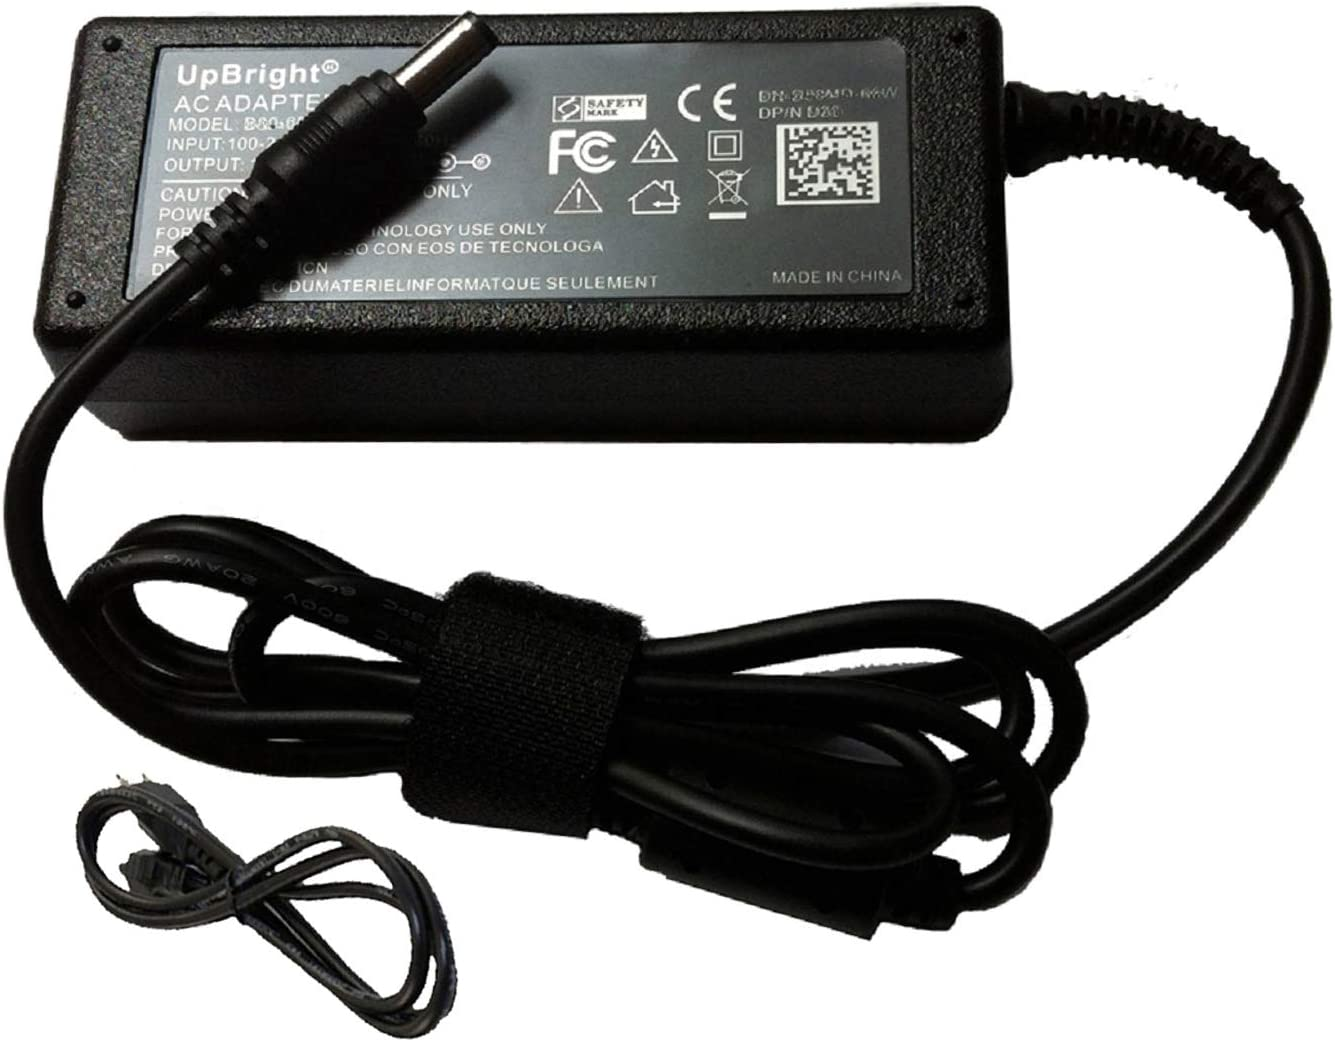 UpBright New 19V AC/DC Adapter Replacement for LG 22MP55HQ 22MP55HQ-T 22MP55HQ-P 22MP56HQ 22MP56HQ-P 22MP65HQ 22MP65HQ-P 23MP55HQ 23MP55HQ-P AH-IPS LED Monitor 19VDC Power Supply Cord Charger PSU